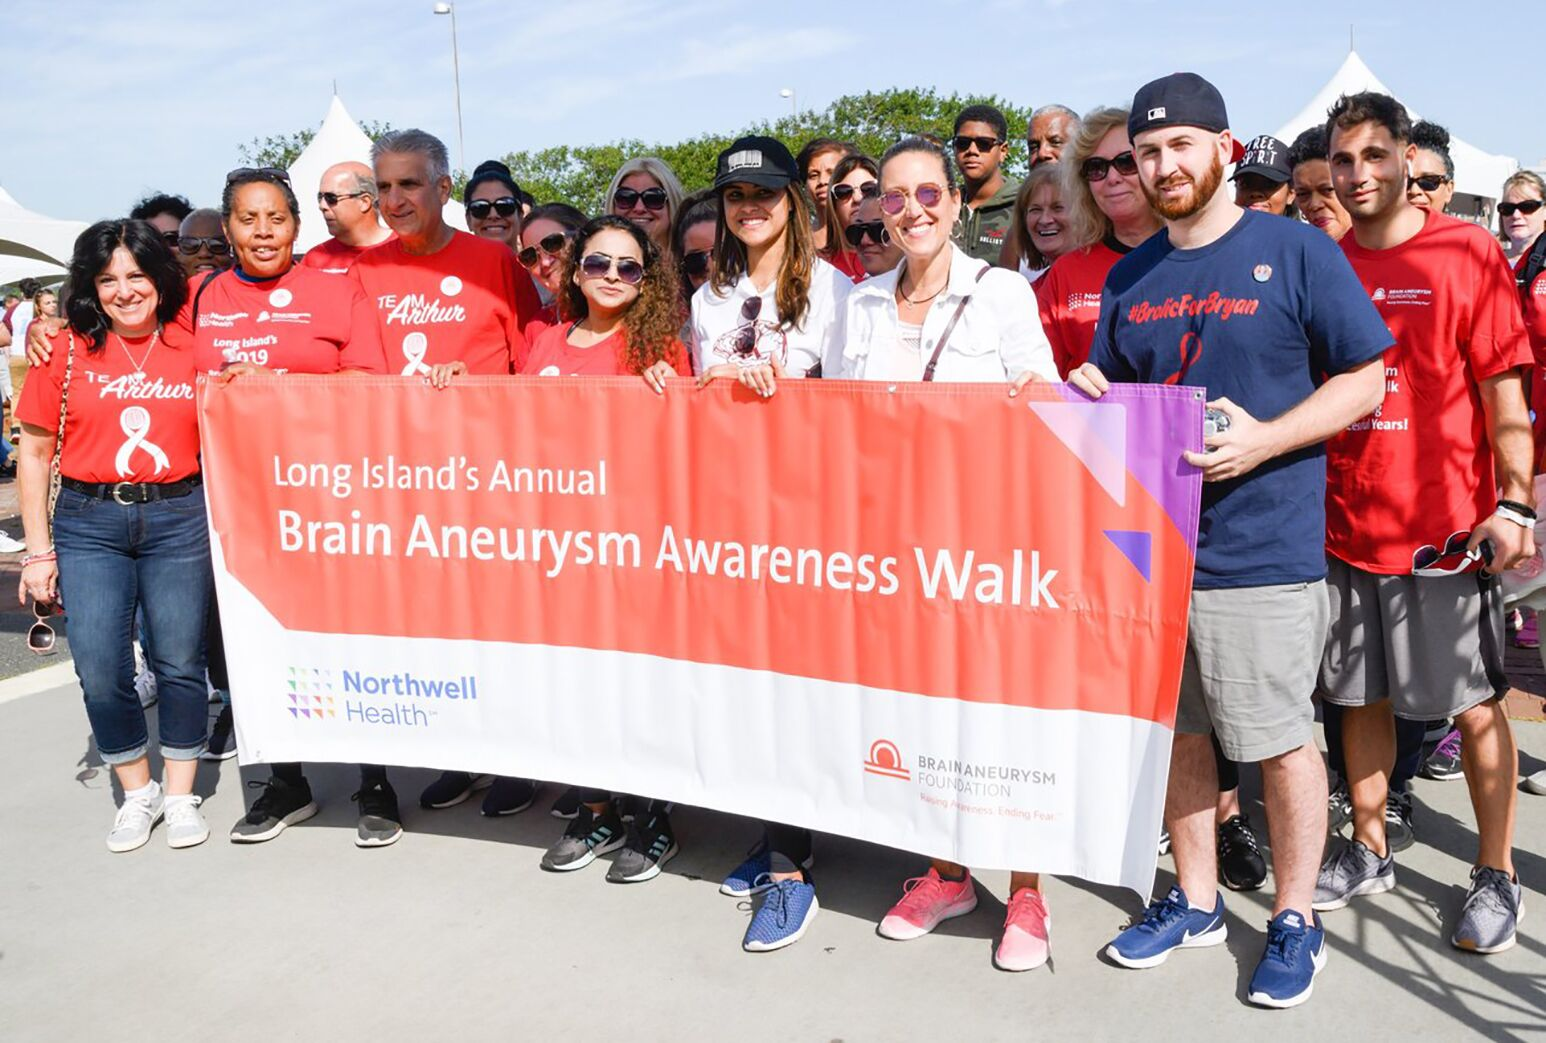 Scenes from the annual Brain Aneurysm Awareness Walk